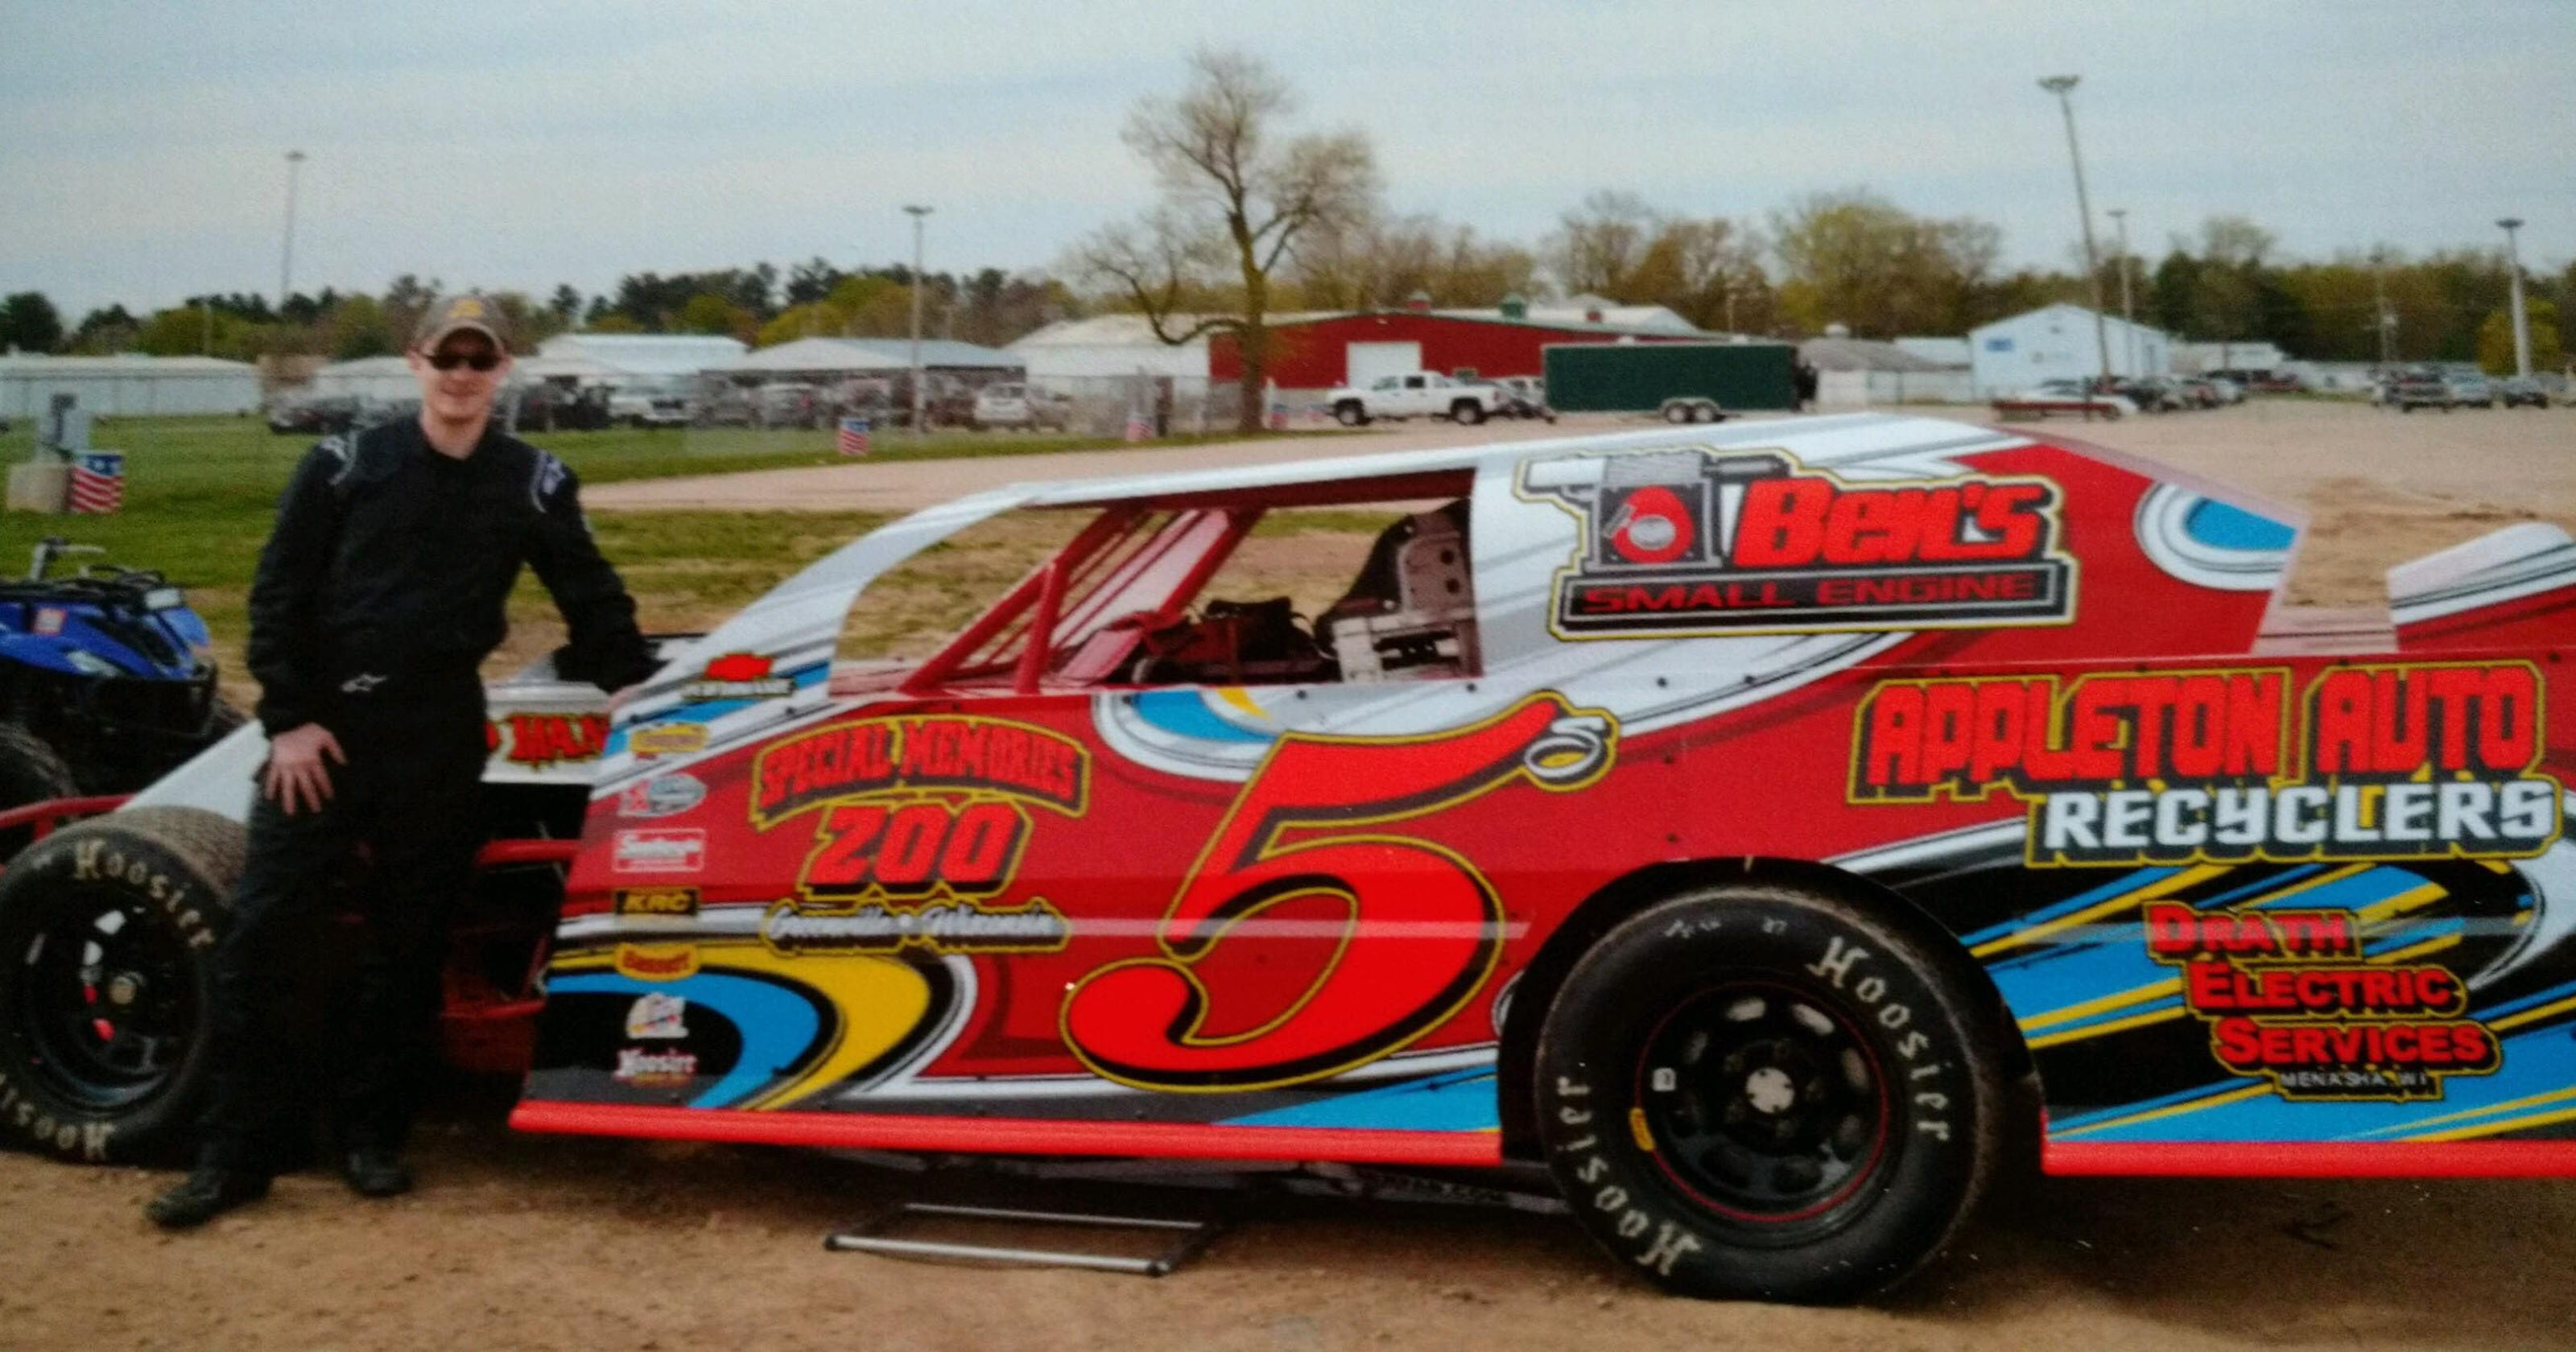 Appleton driver Brock Saunders will hit WIR pavement in dirt sportmod